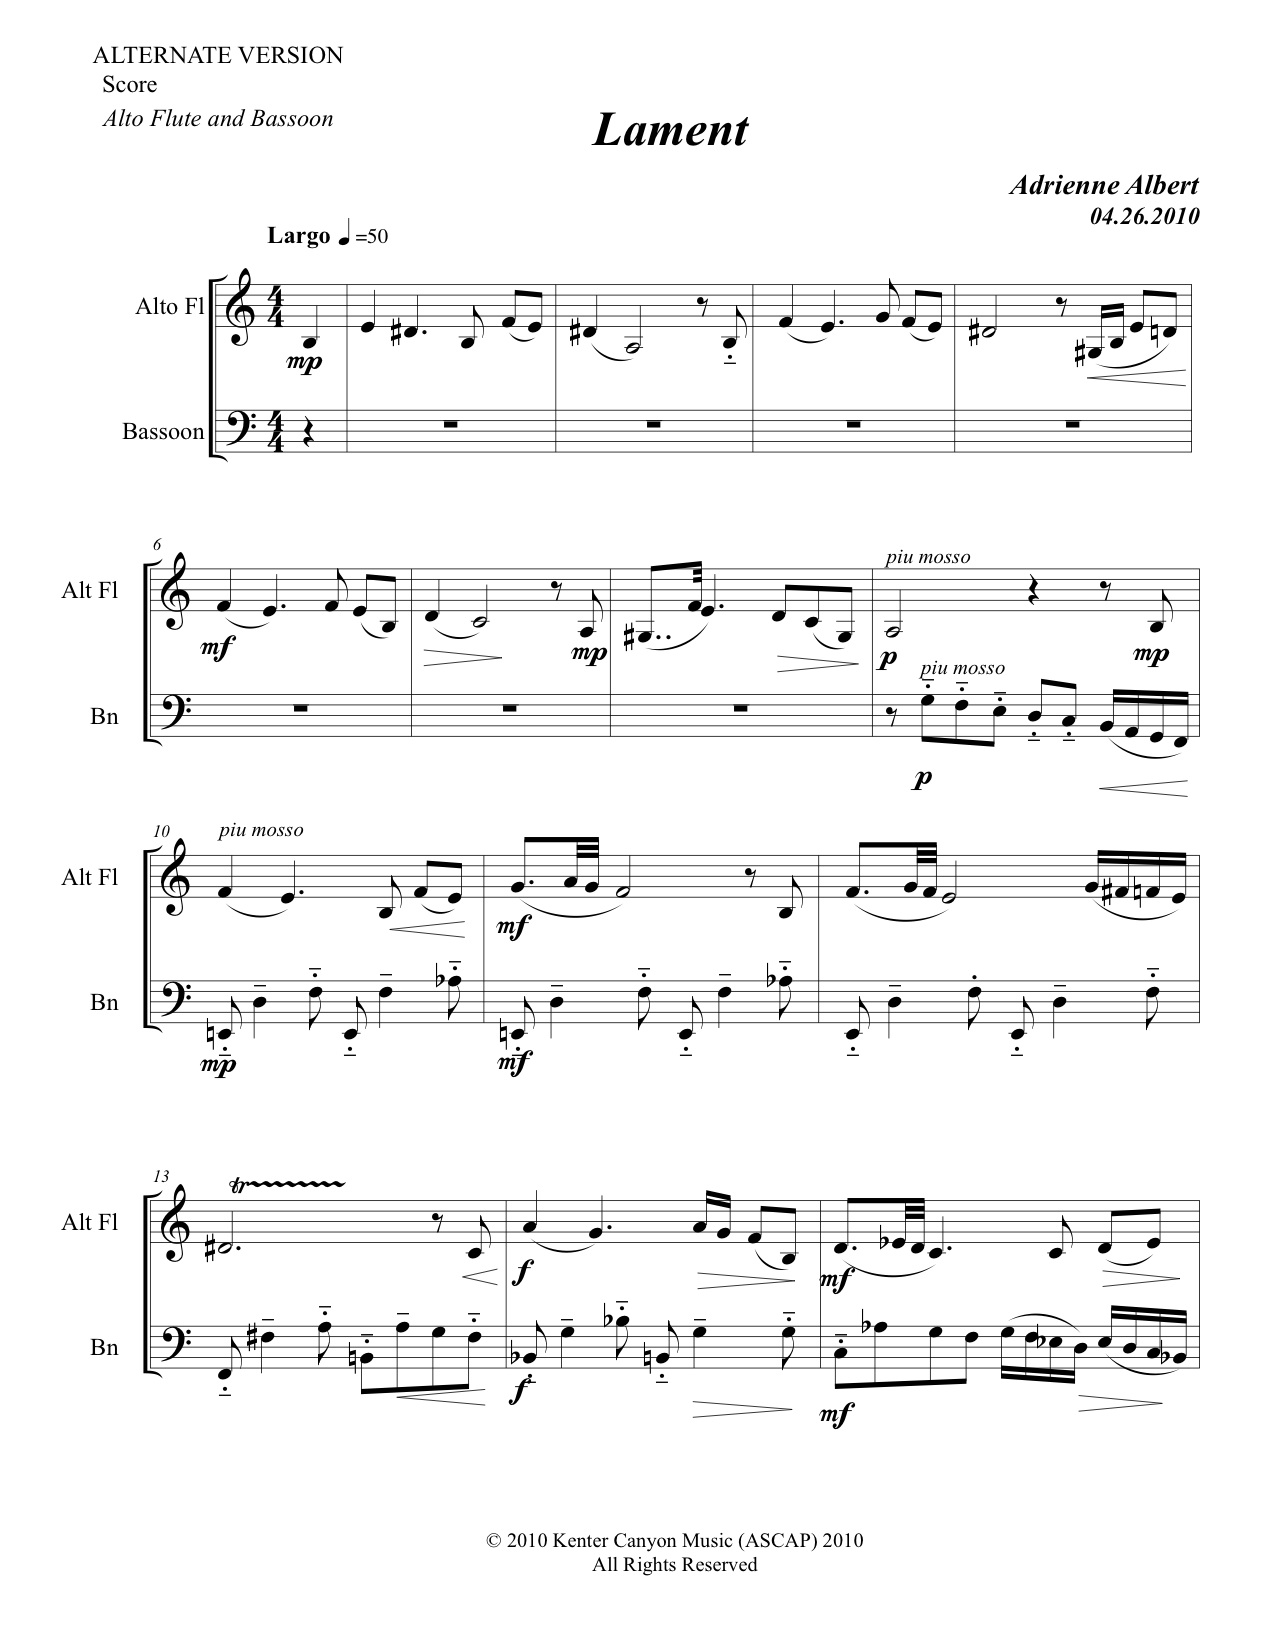 Lament for Alto Flute and Bassoon